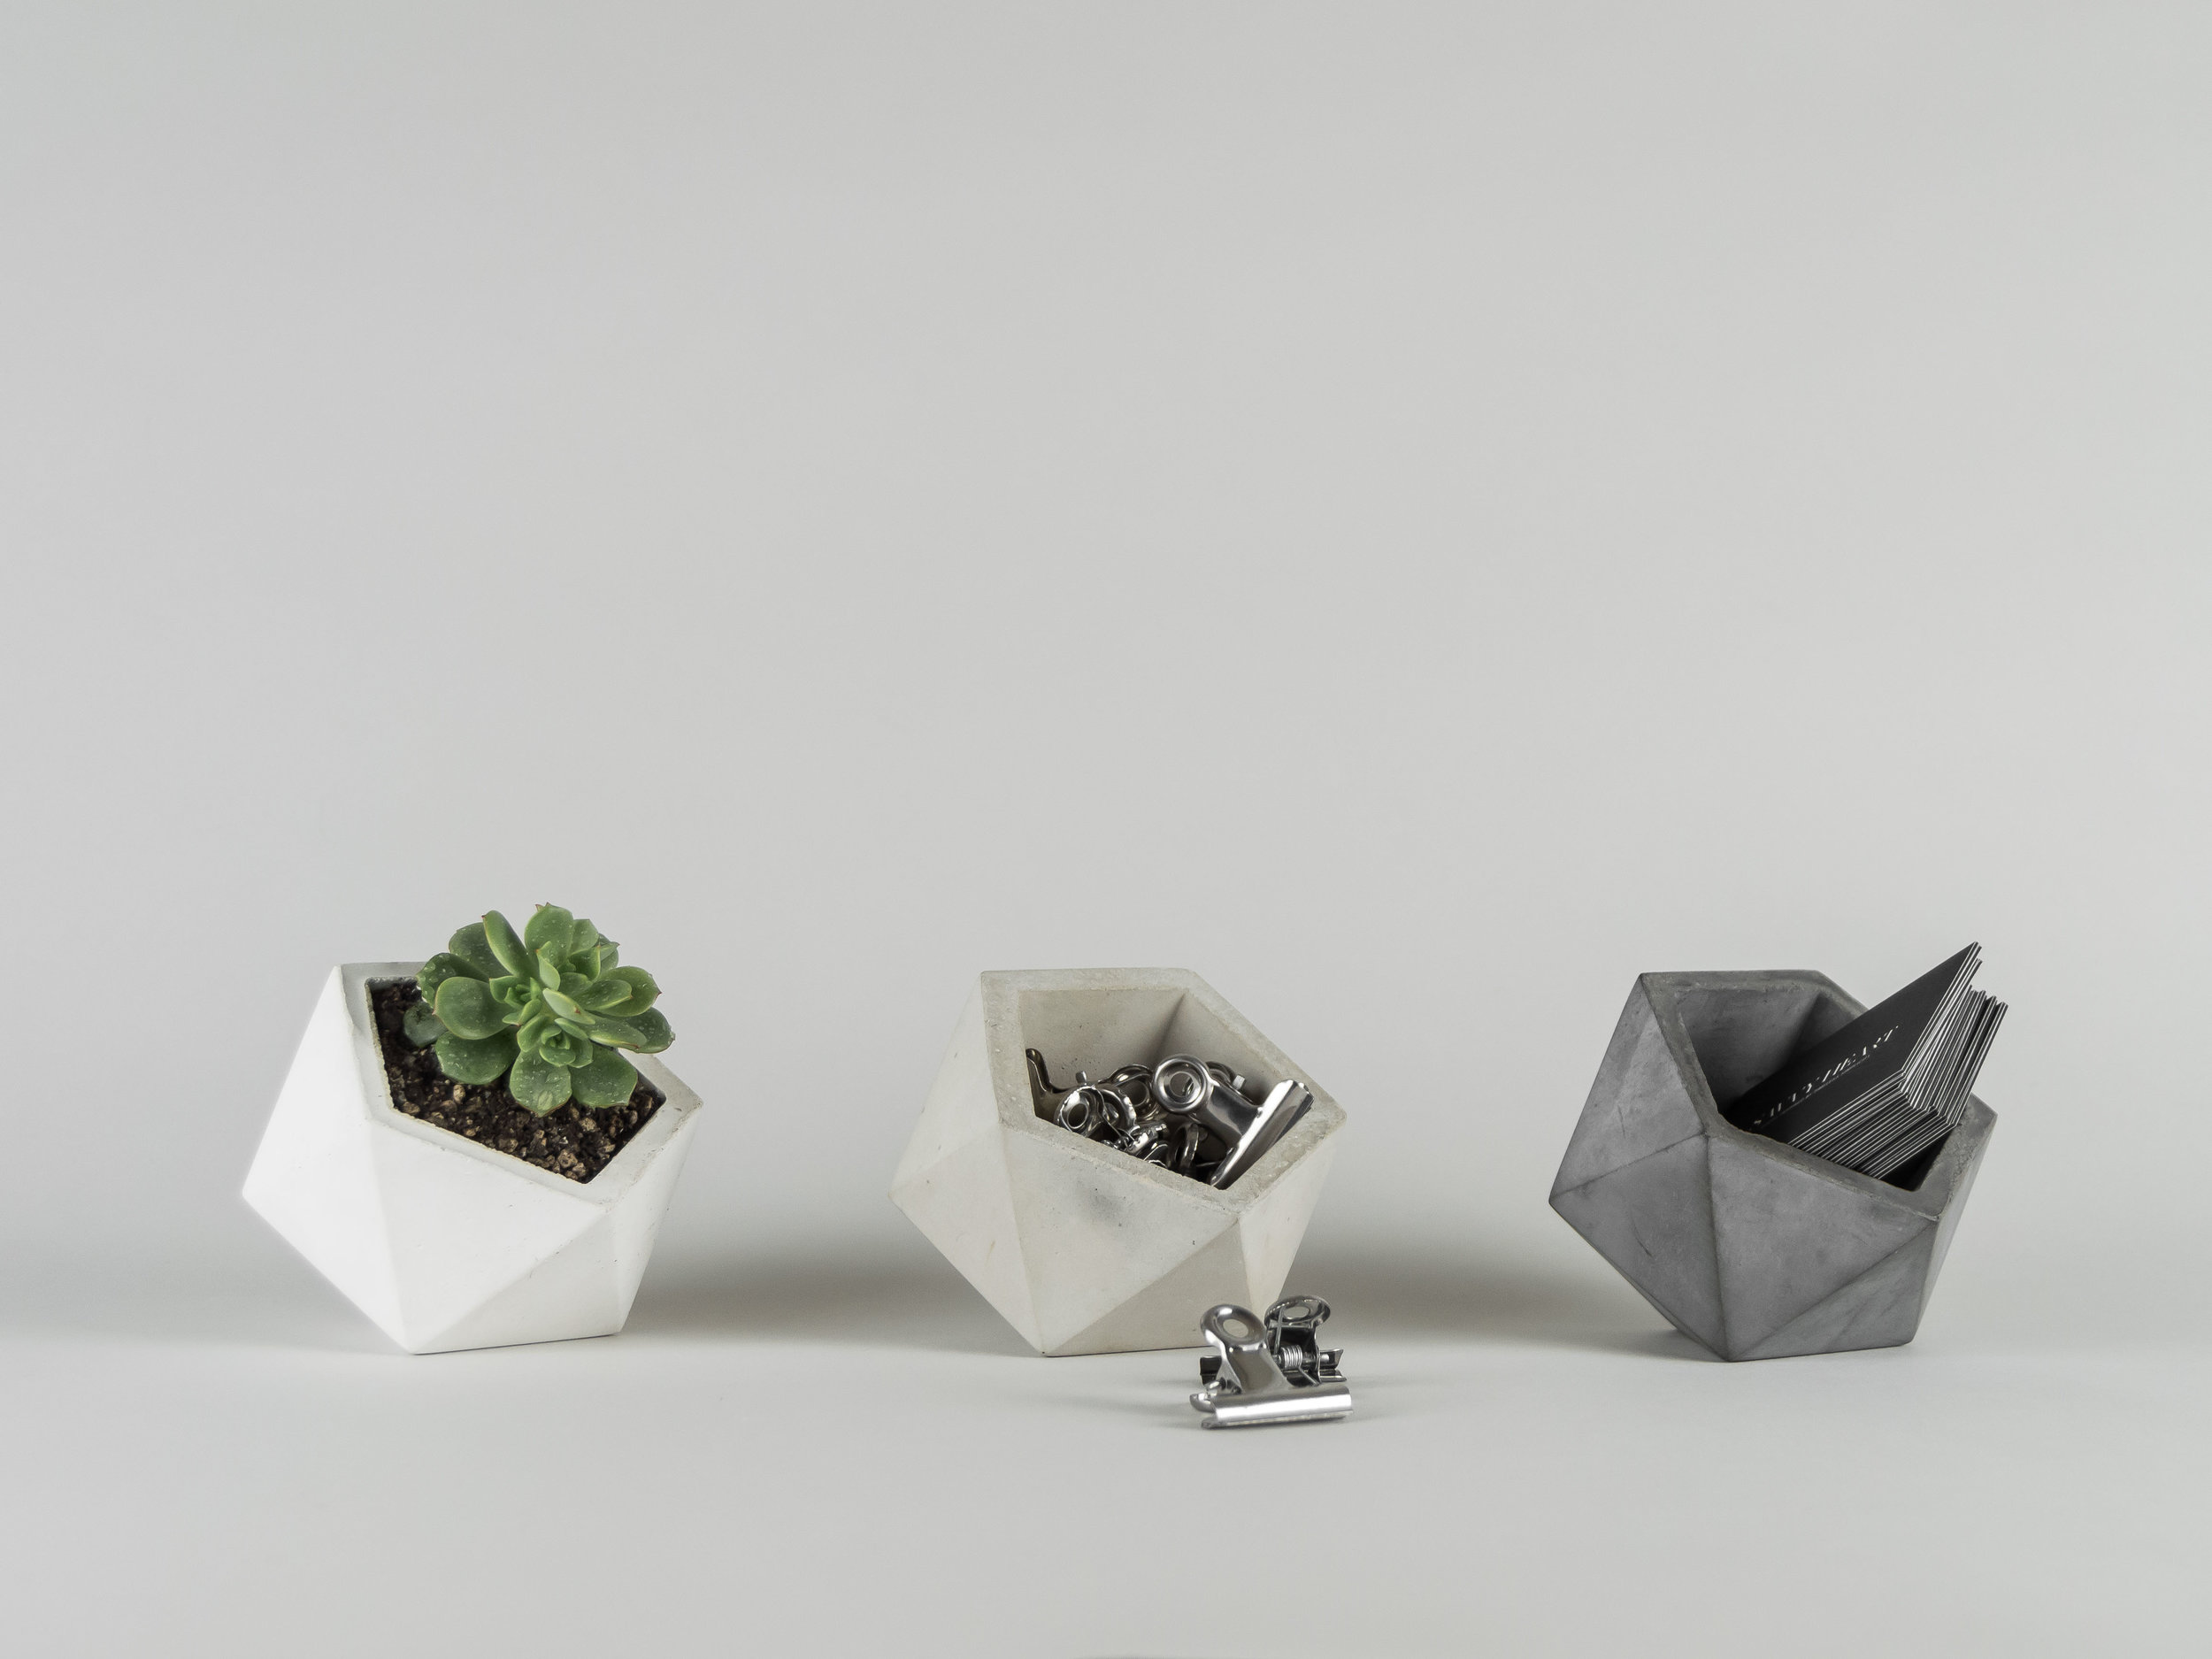 Copy of Three geometric concrete vessels in gray, natural and white by THe Savvy Heart